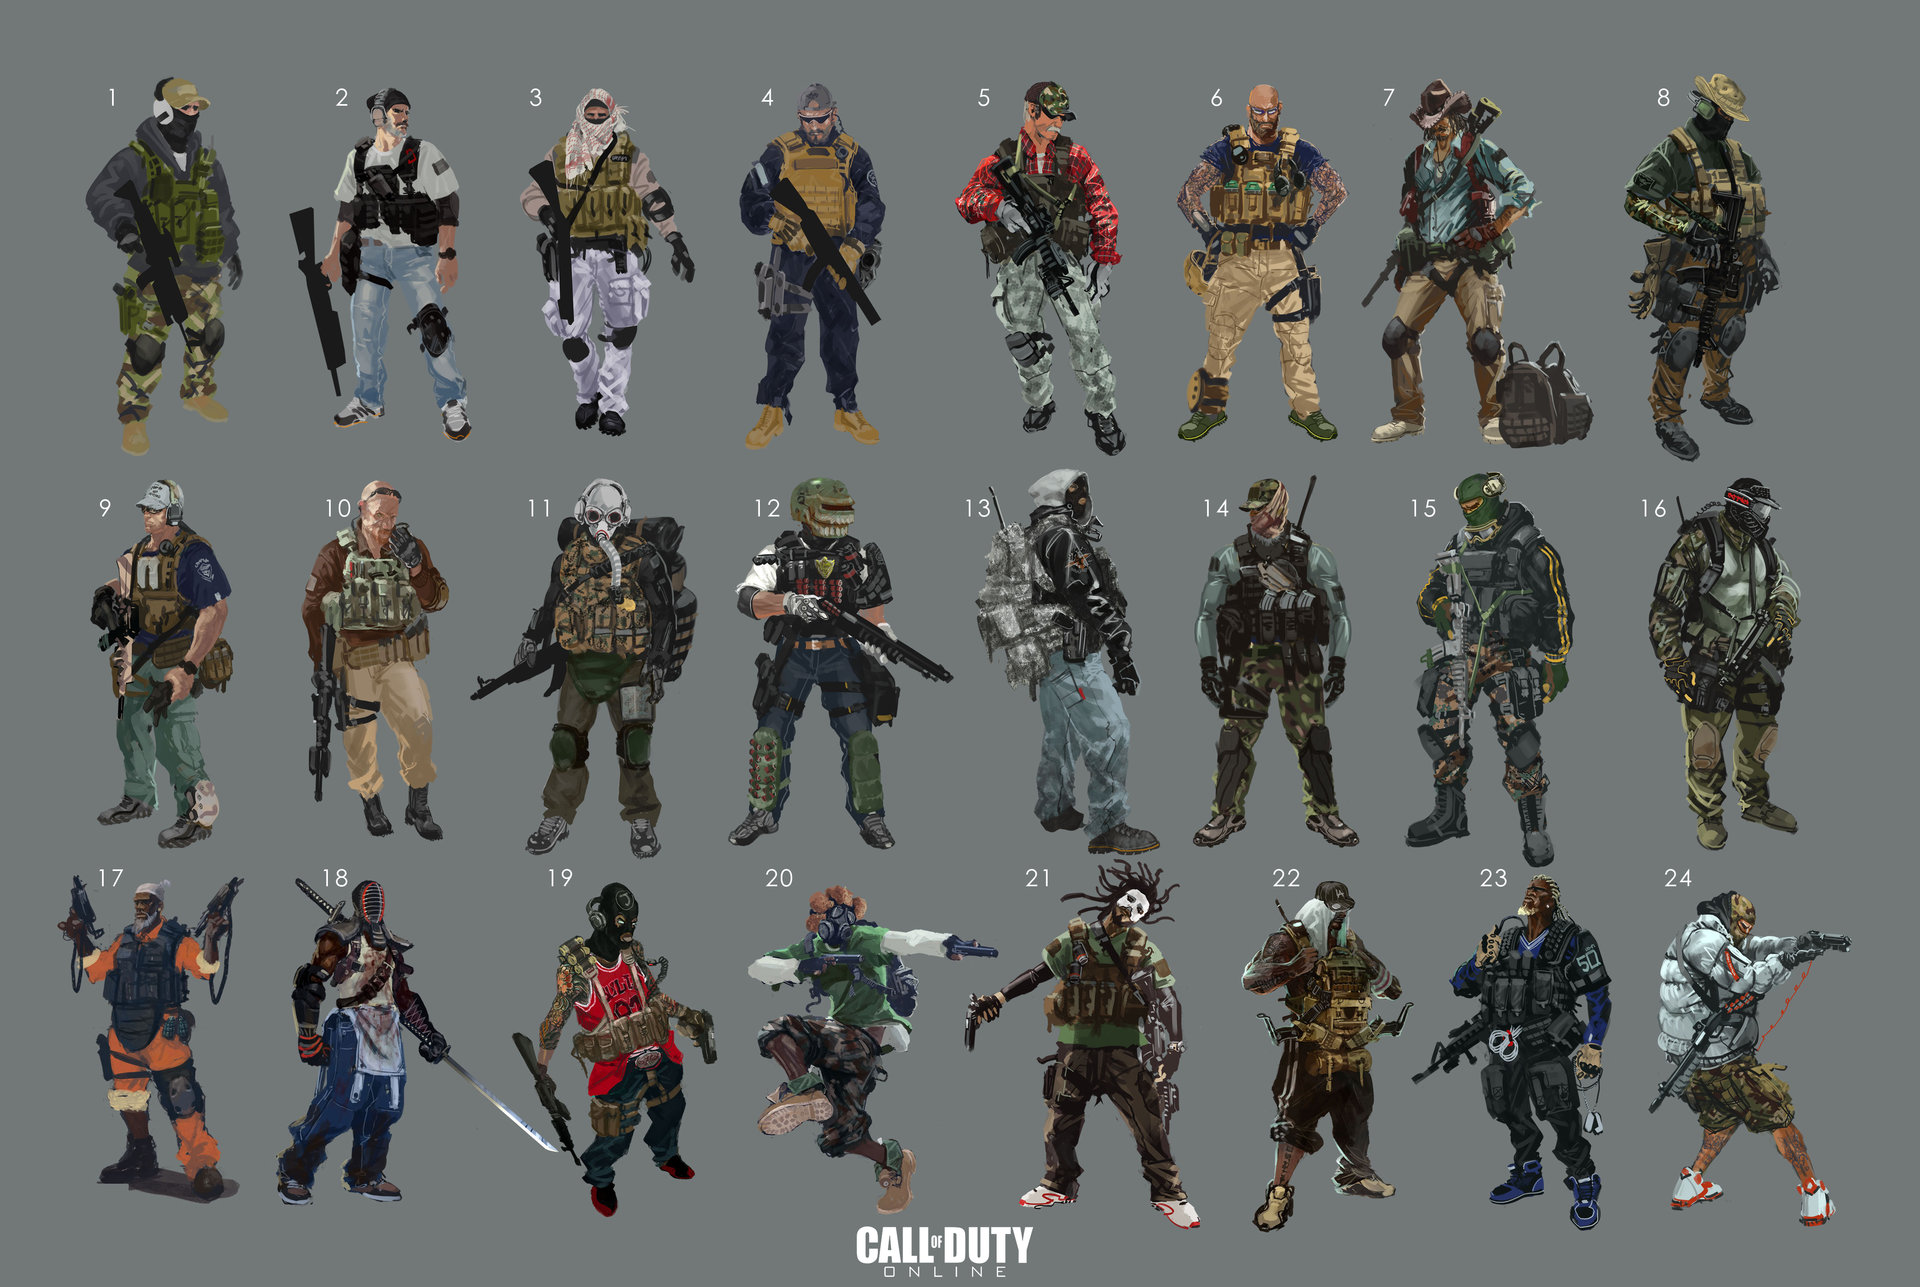 Image Mercenaries Concept Codo Jpg Call Of Duty Wiki